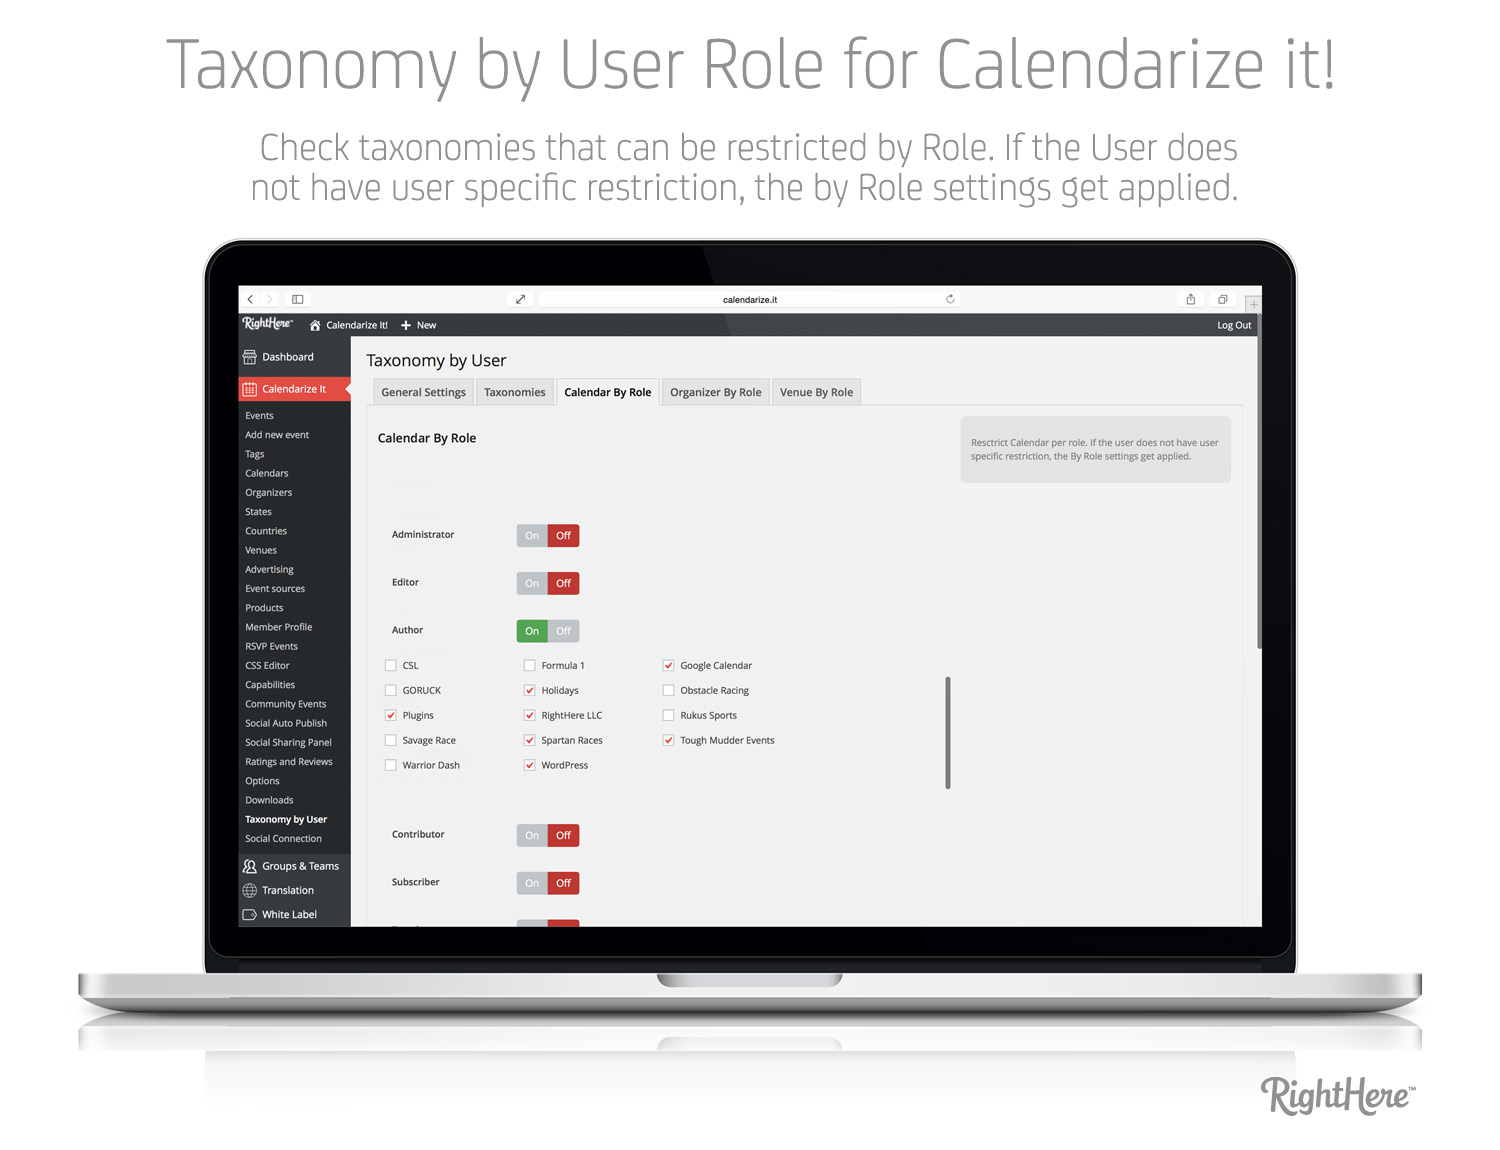 Taxonomy by User Role - Calendar by Role tab